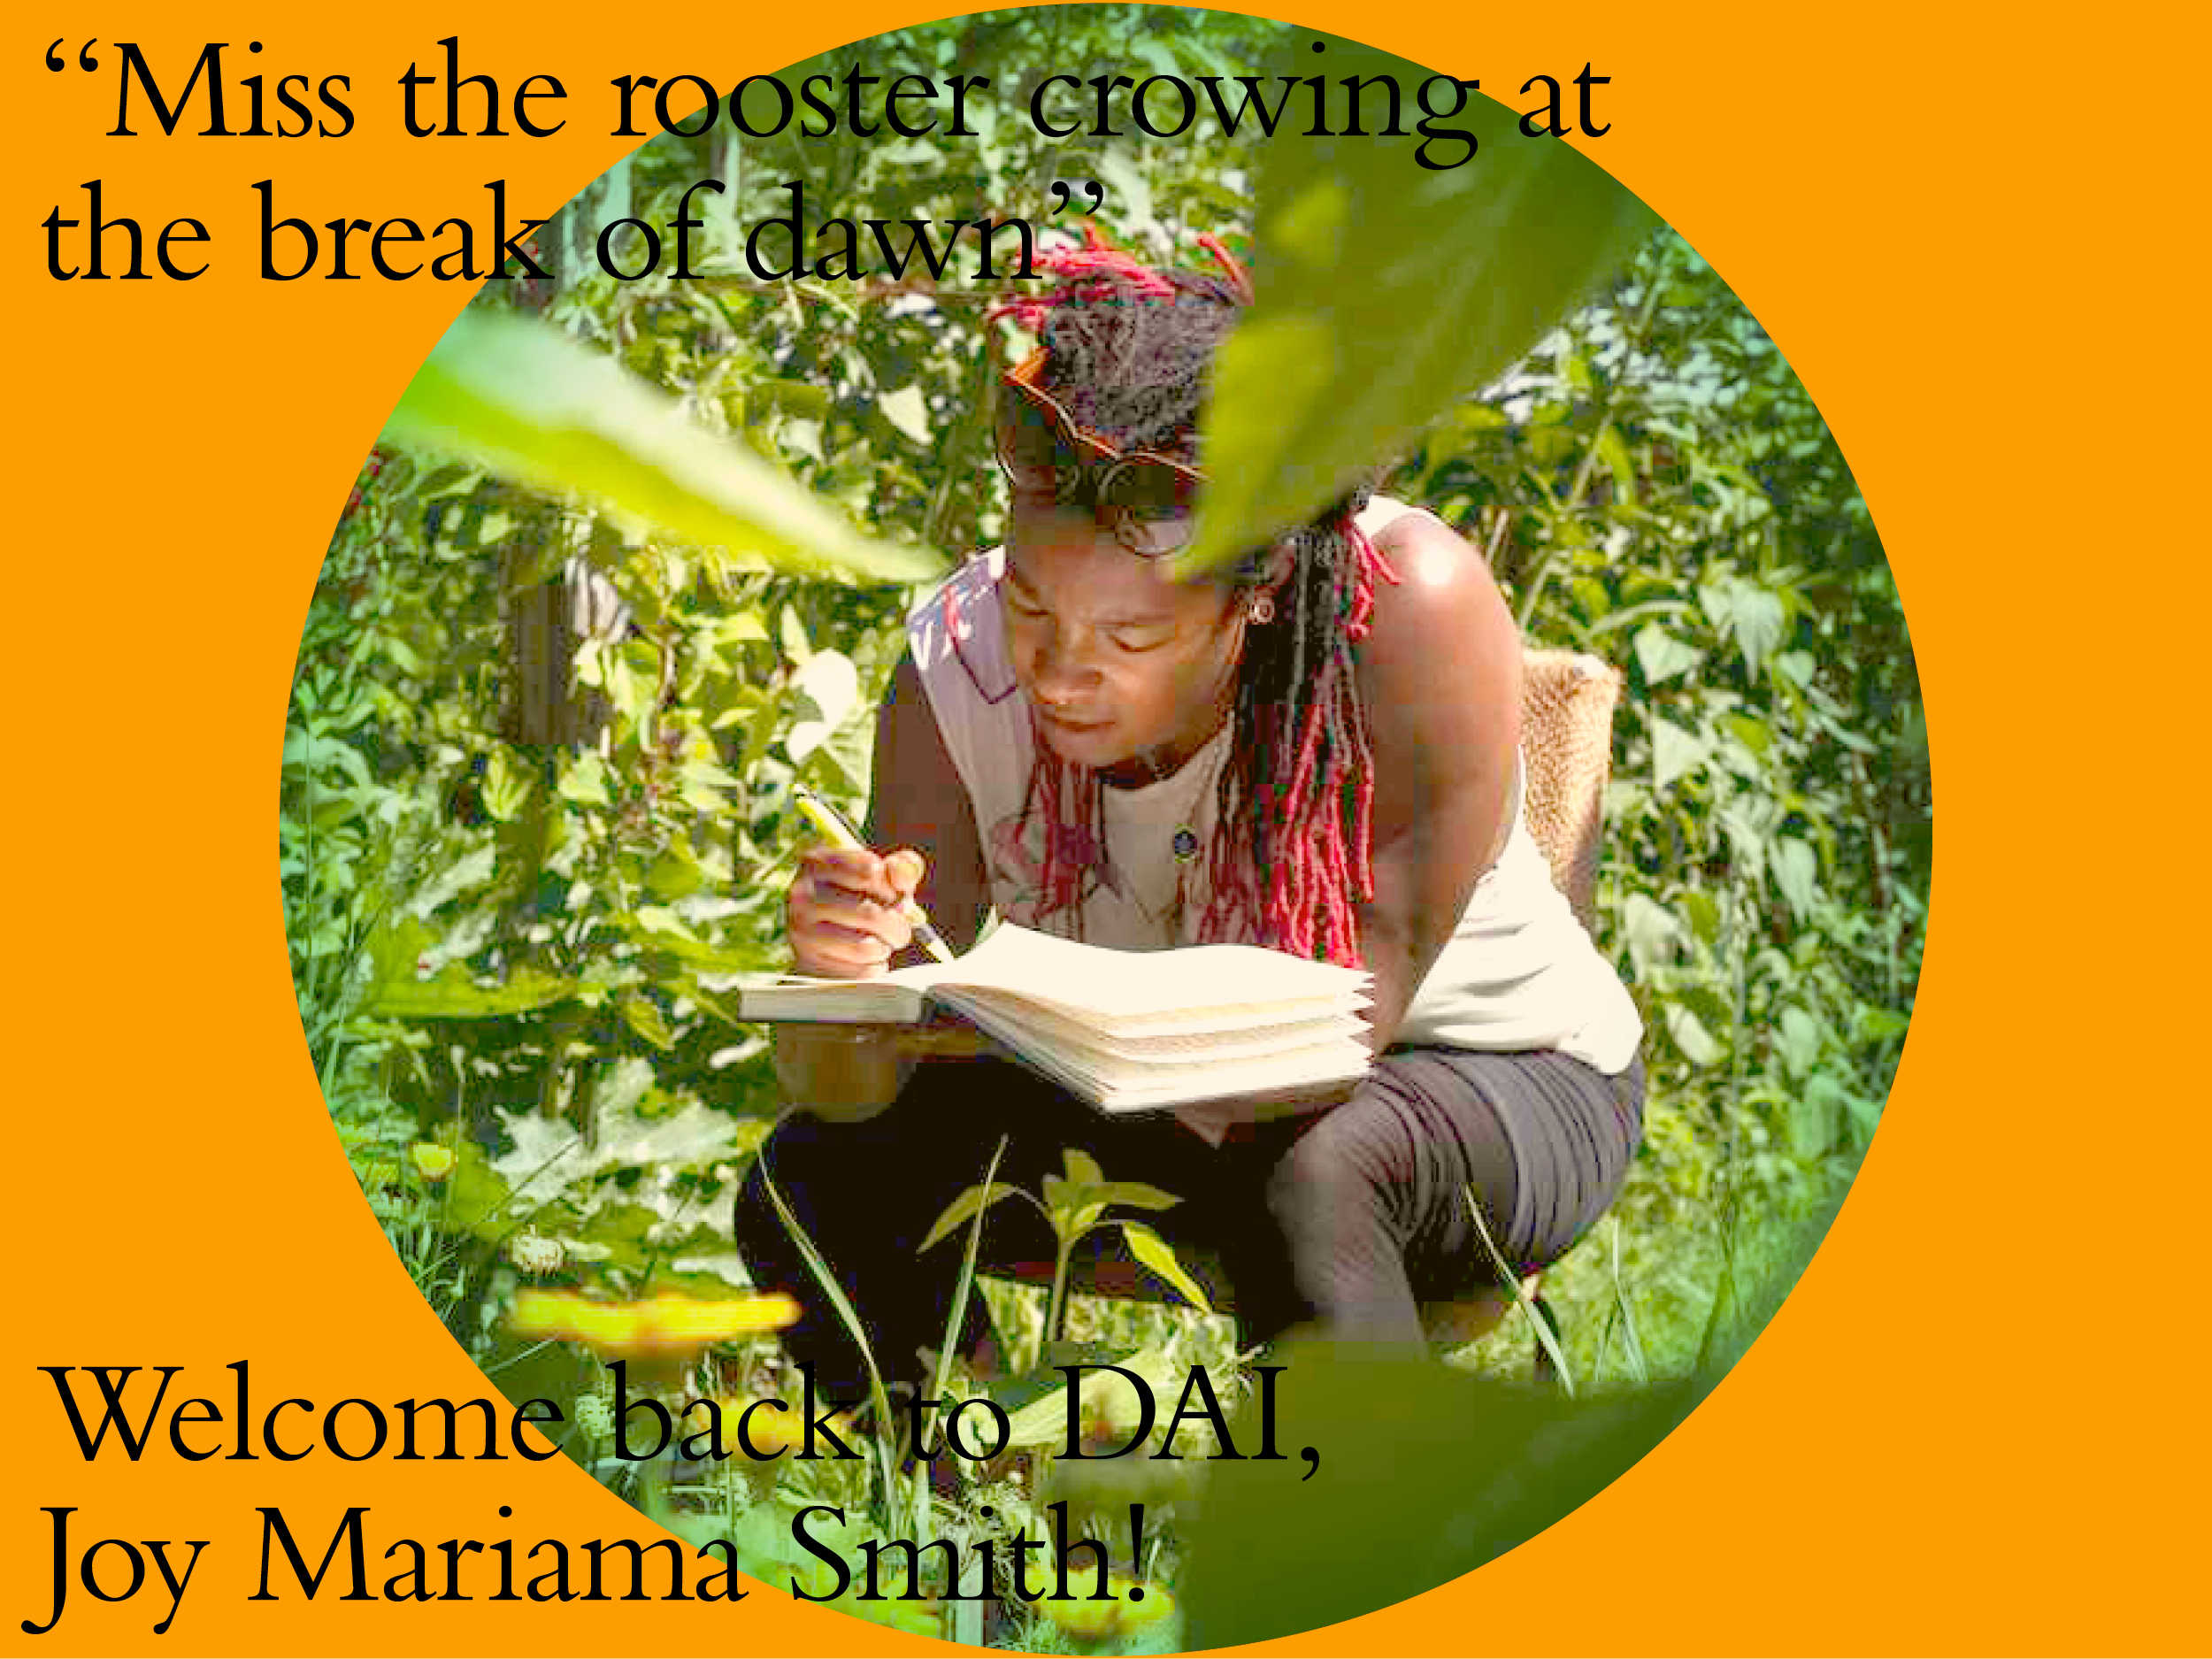 DAI welcomes back Joy Mariama Smith as a respondent for Kitchen, 30th June